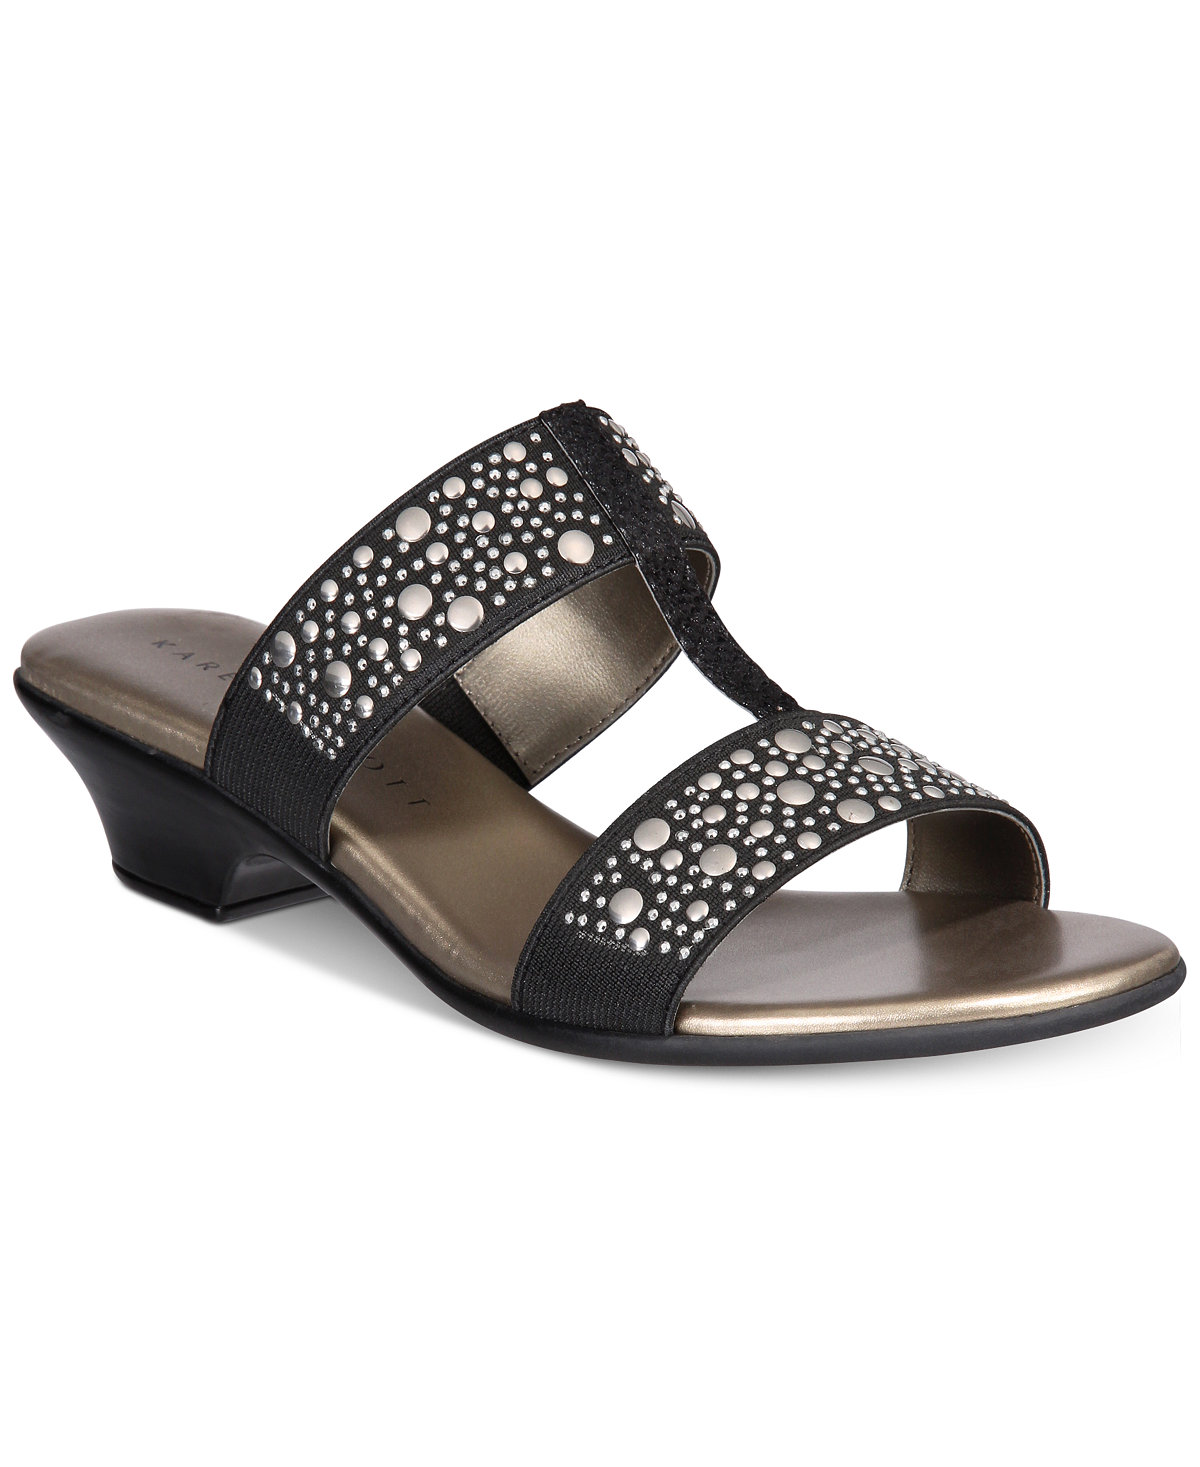 Karen Scott Eddina Embellished Slide Sandals